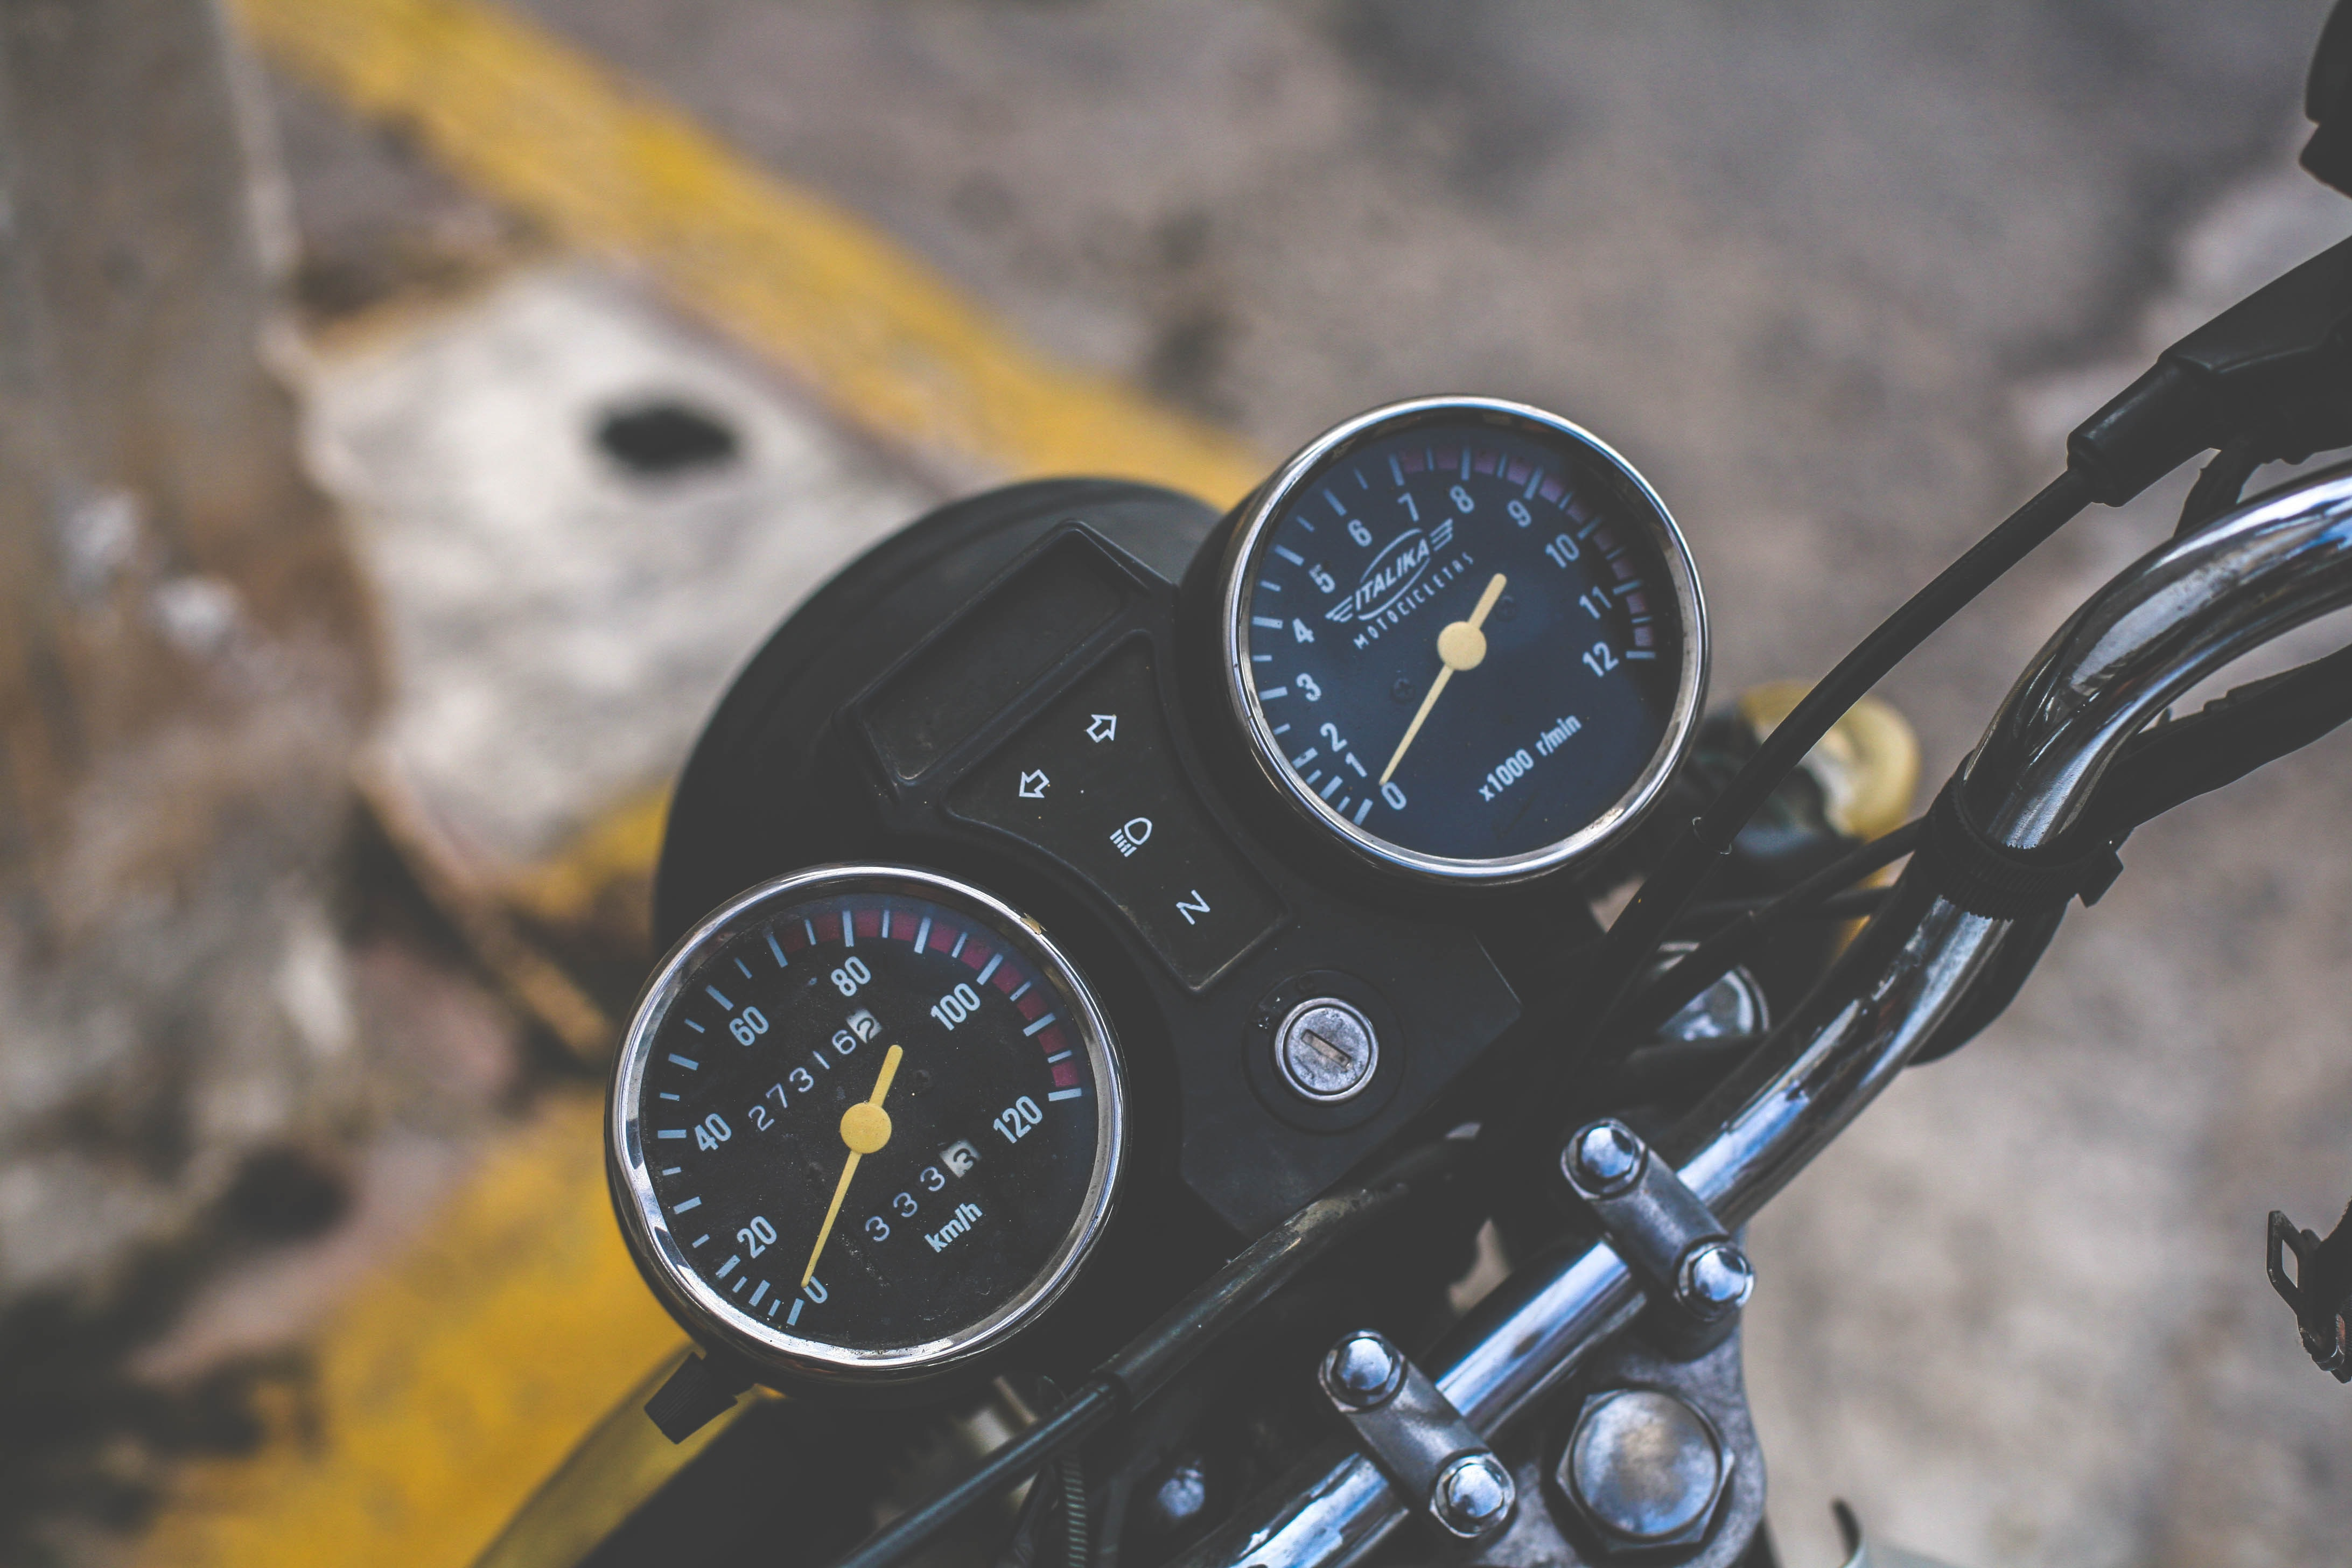 black motorcycle gauge meters